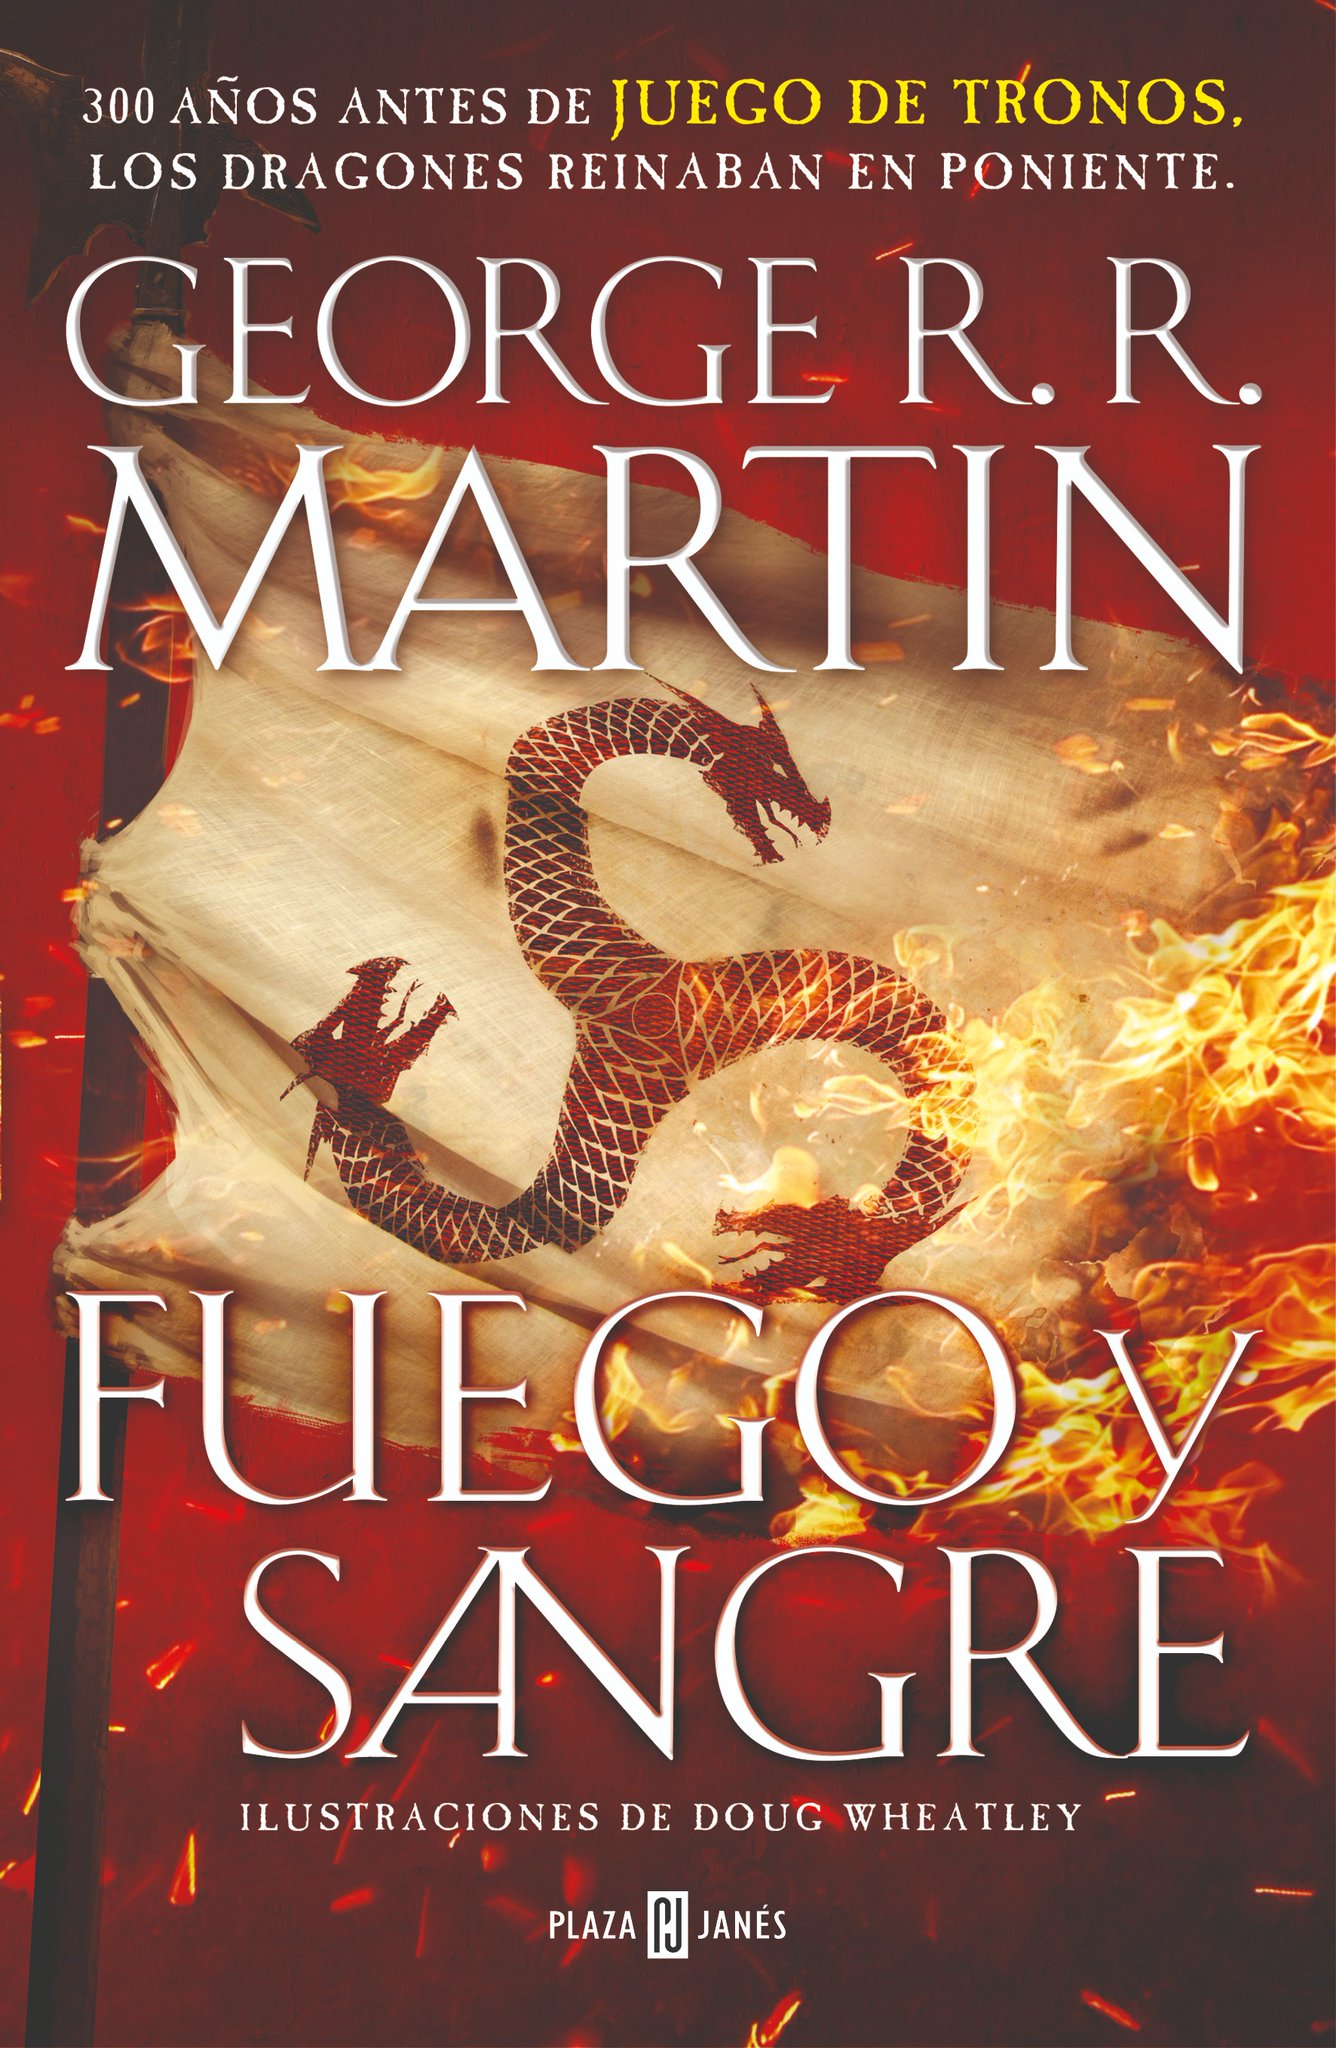 https://www.goodreads.com/book/show/40553833-fuego-y-sangre?ac=1&from_search=true